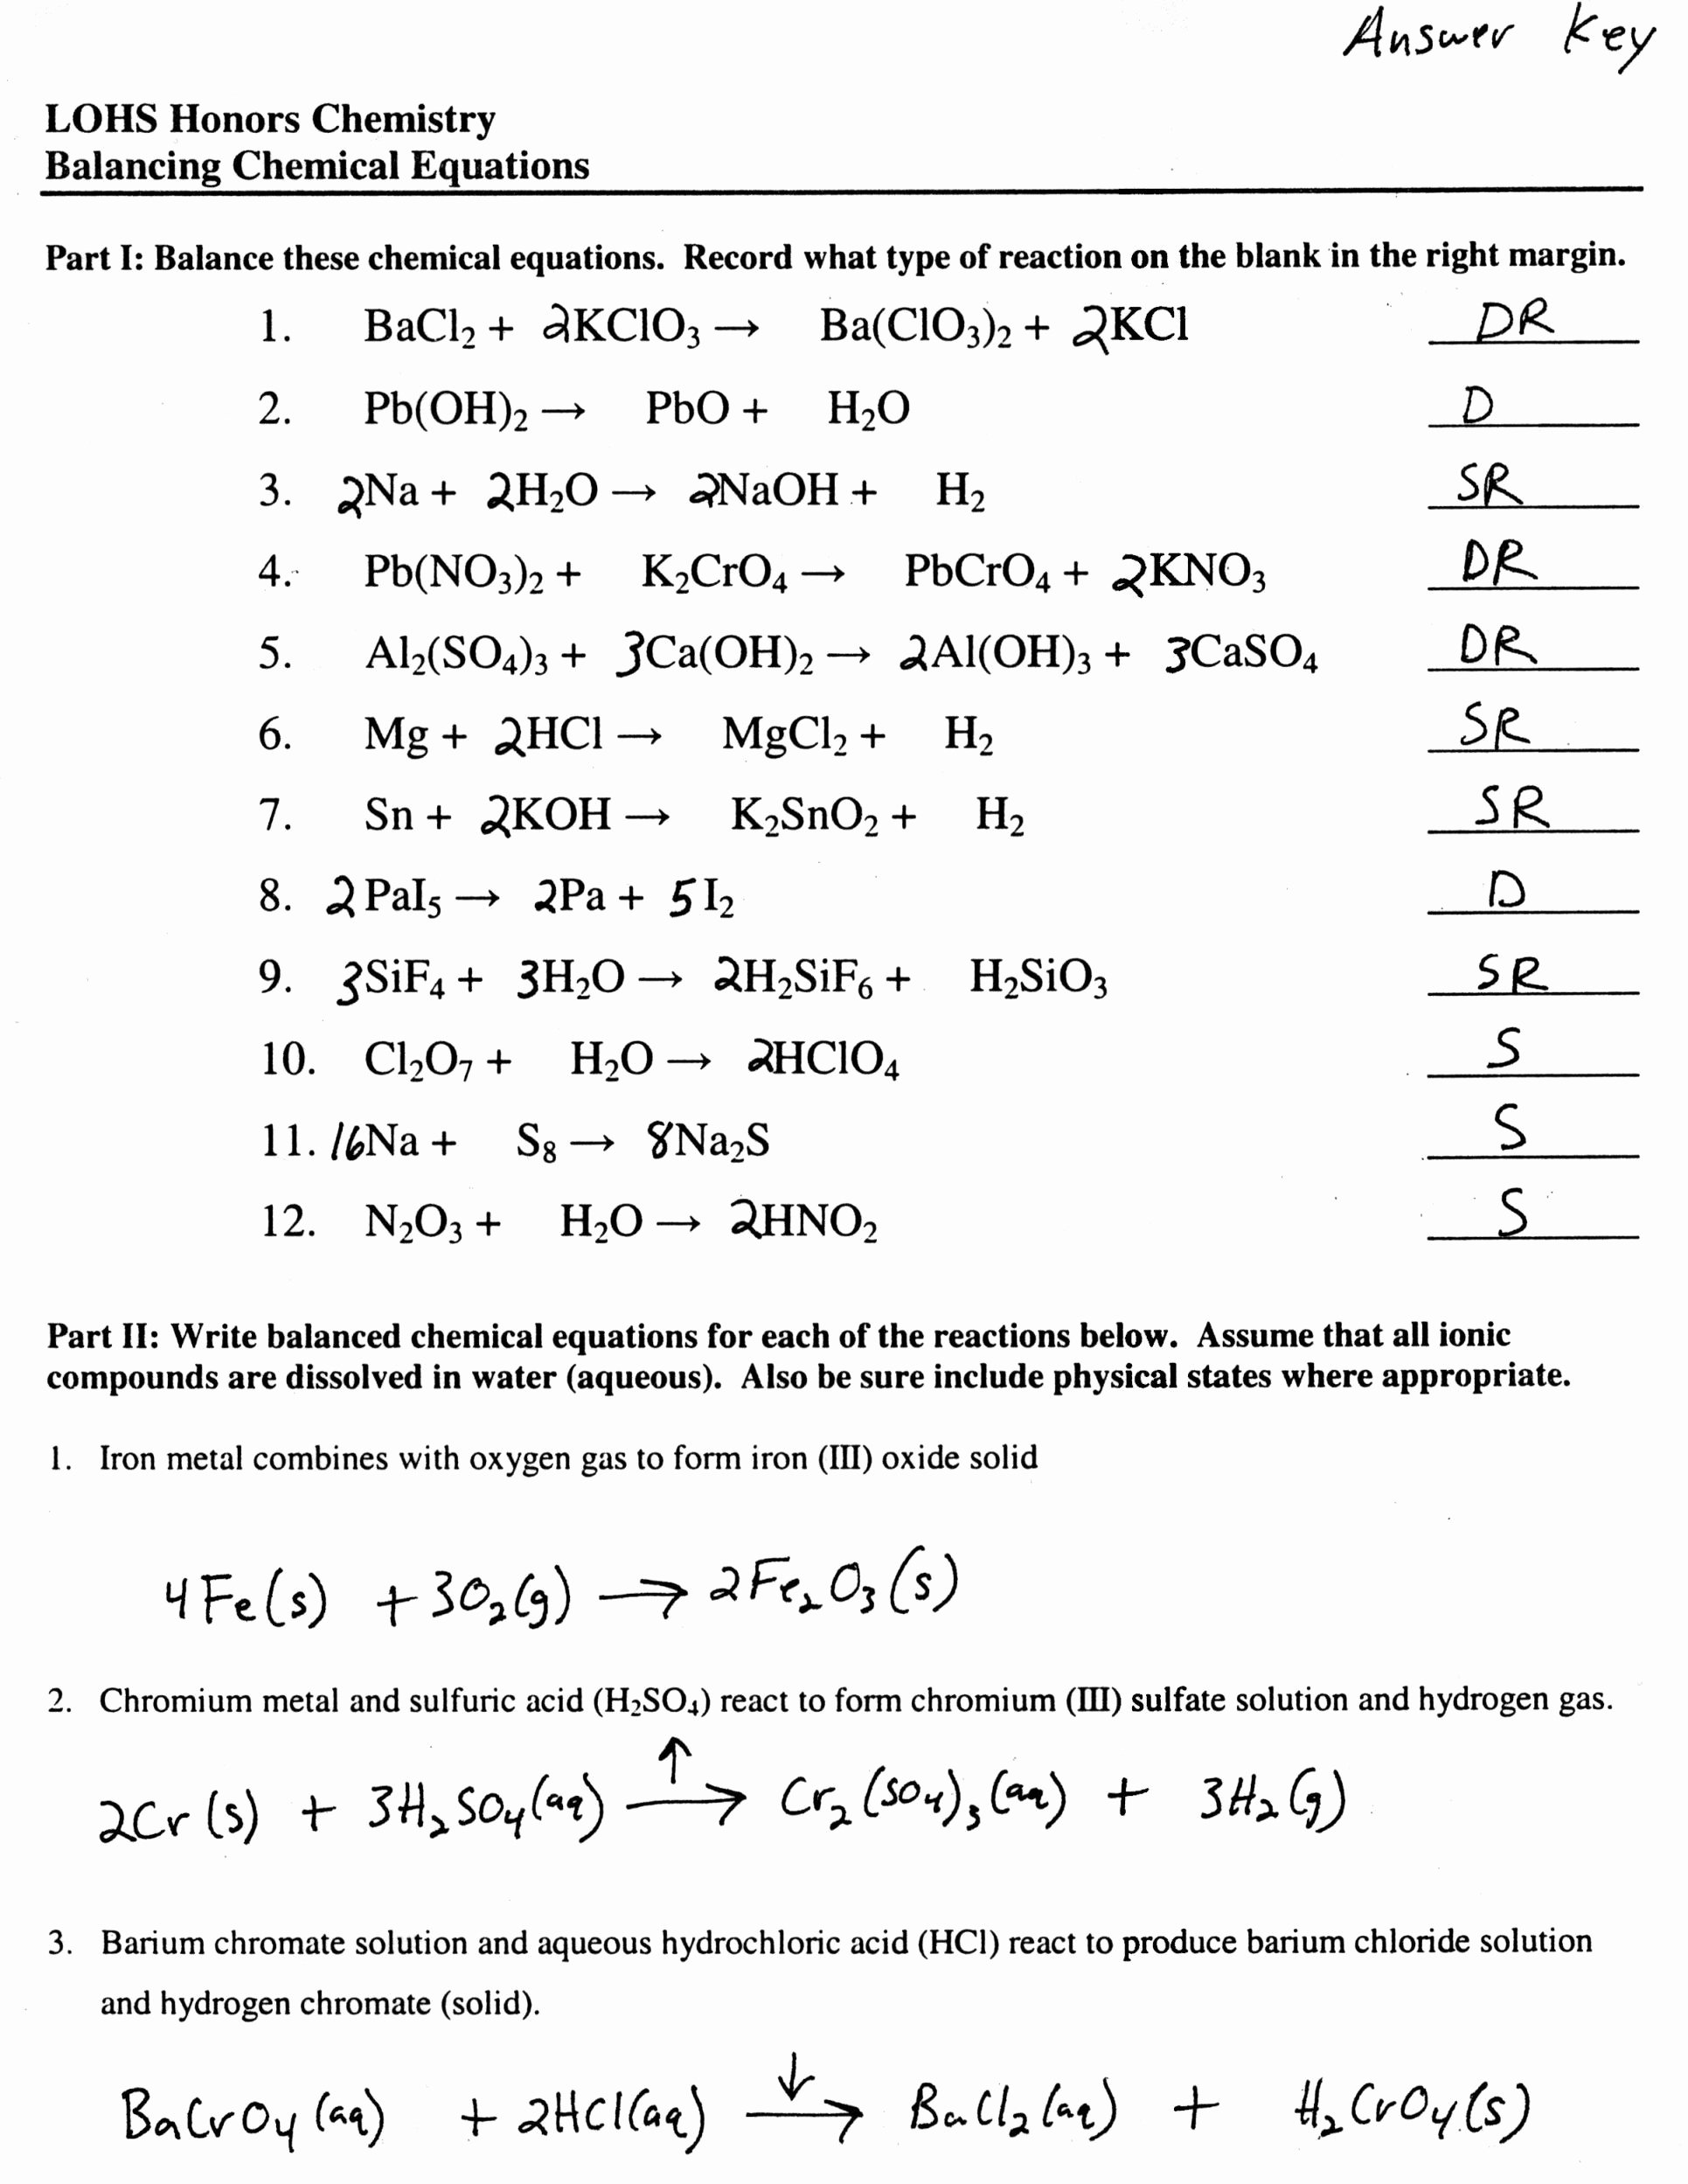 50 Nuclear Equations Worksheet Answers